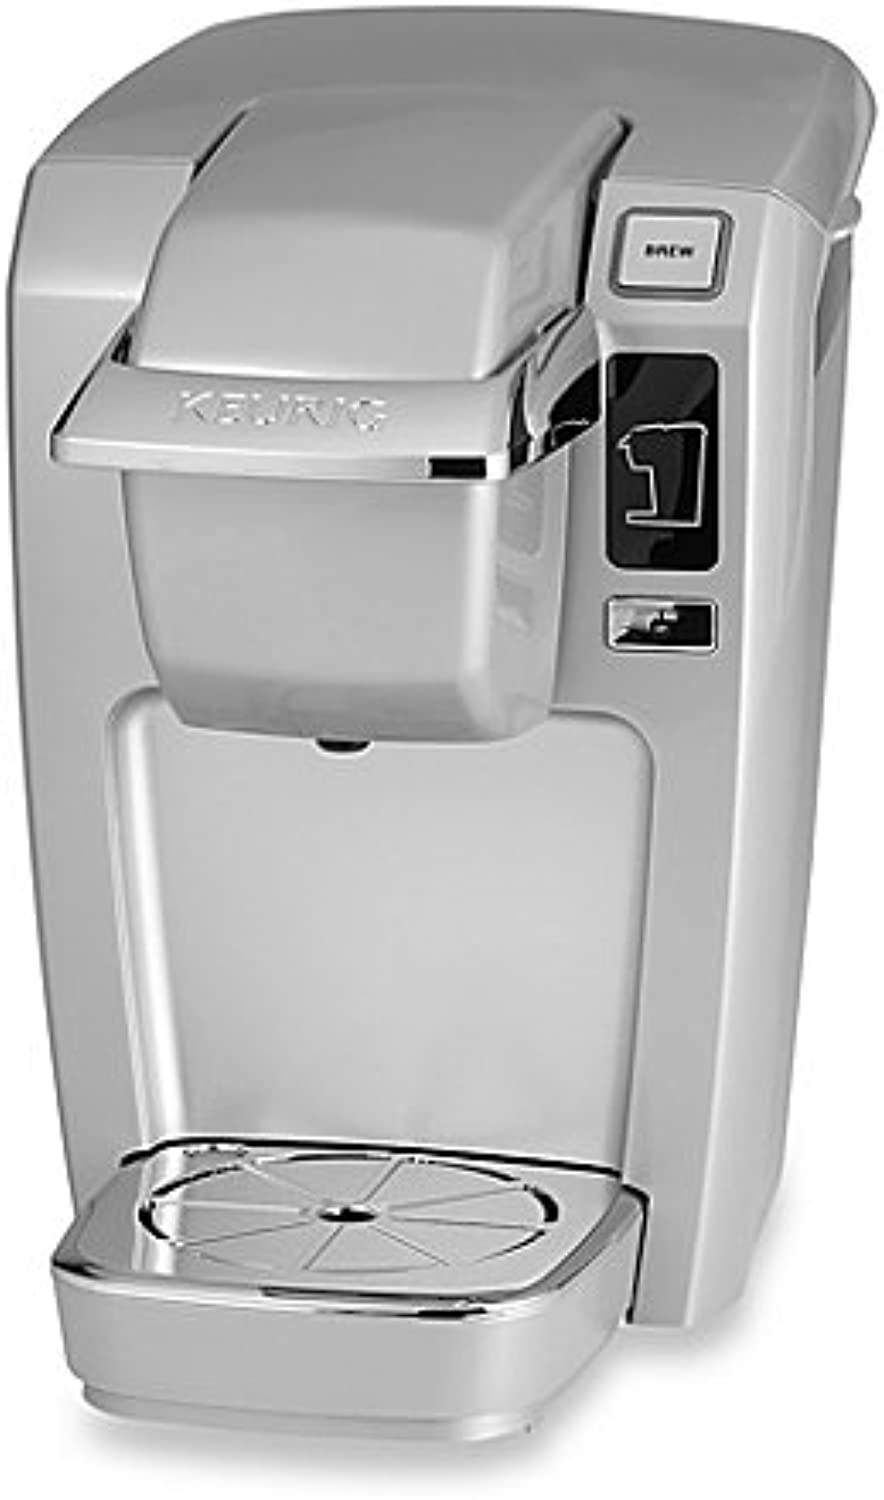 Compact Design Keurig? K10 K15 Brewing System Perfect for smaller spaces, dorms, offices, or vacation homes (Platinum)